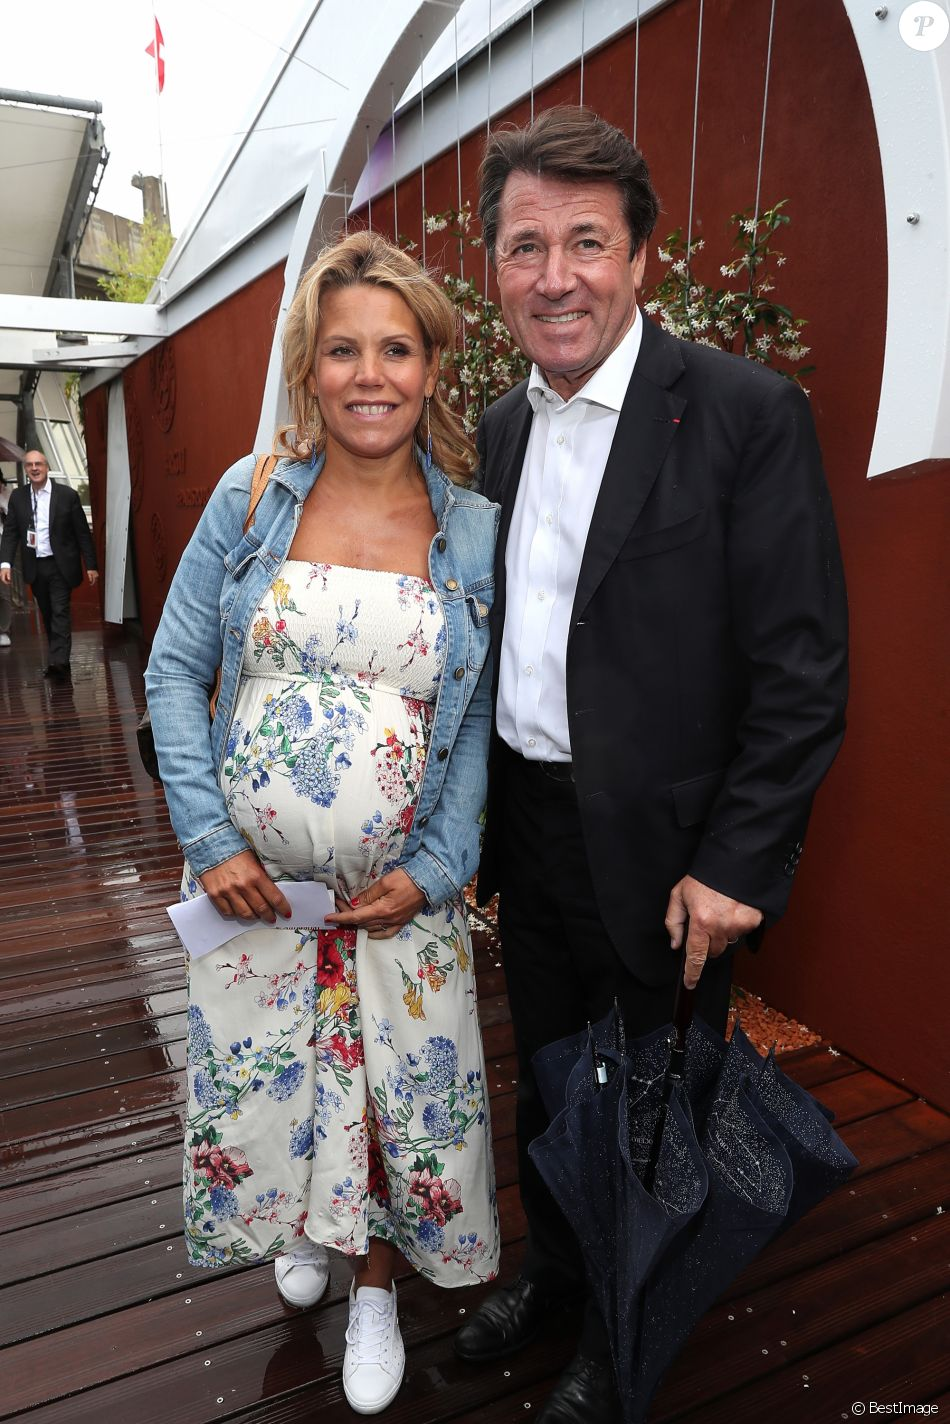 laura tenoudji enceinte et radieuse avec christian estrosi roland garros purepeople. Black Bedroom Furniture Sets. Home Design Ideas